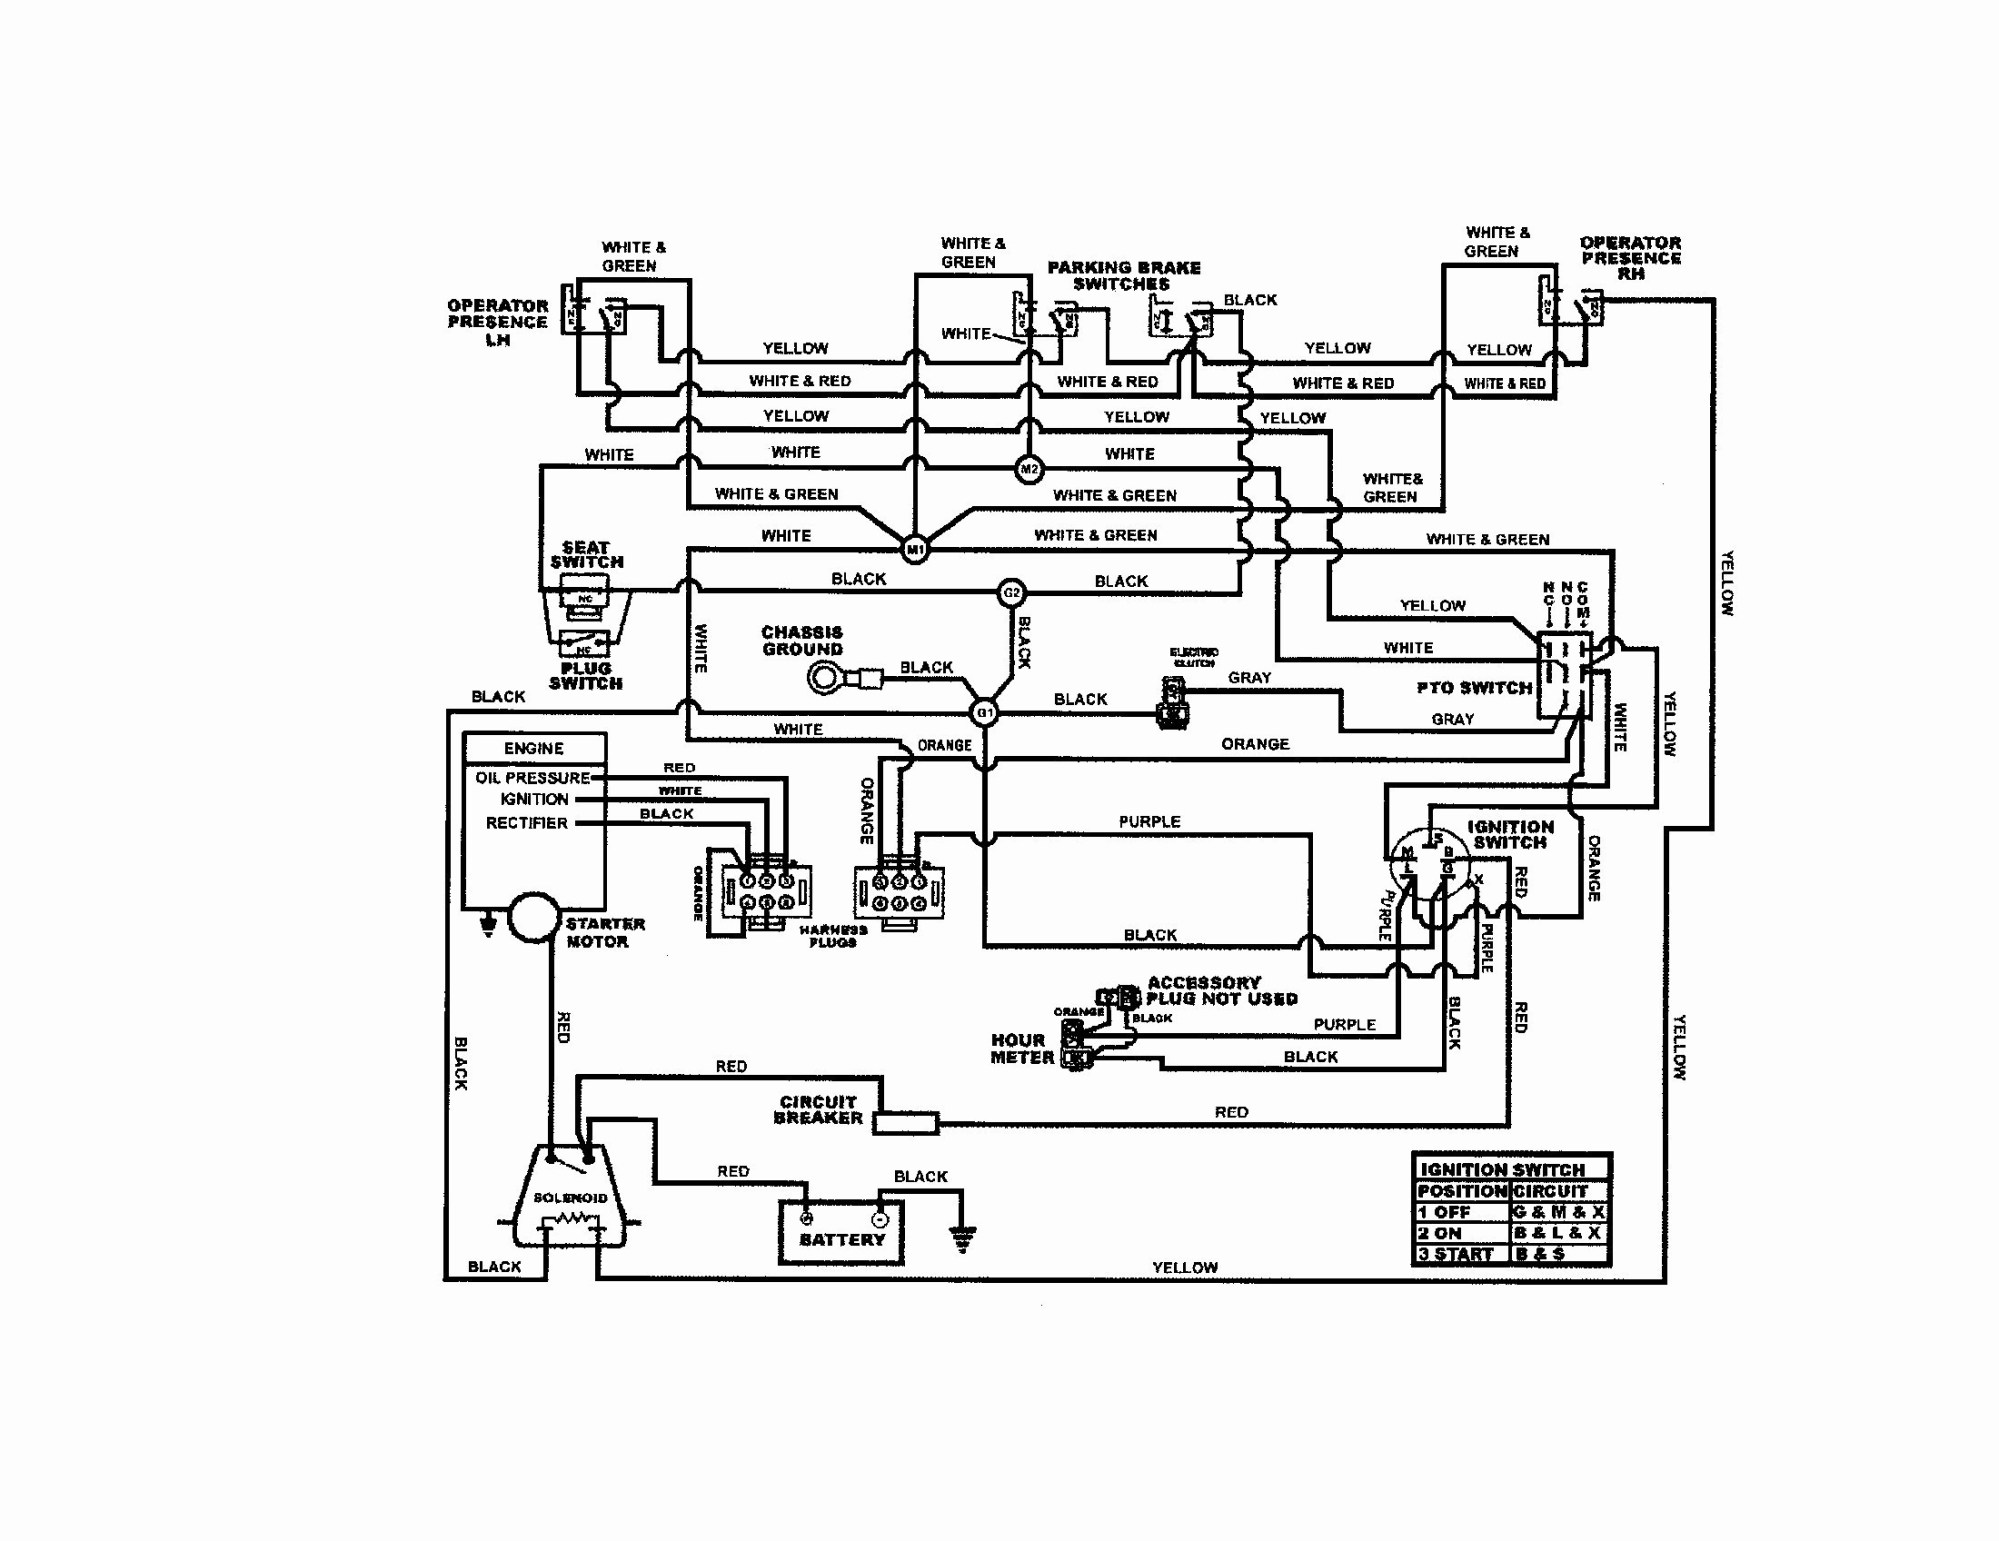 hight resolution of briggs stratton ignition diagram trusted wiring diagrams rh wiringboxme today briggs and stratton engine wiring briggs and stratton ignition coil wiring